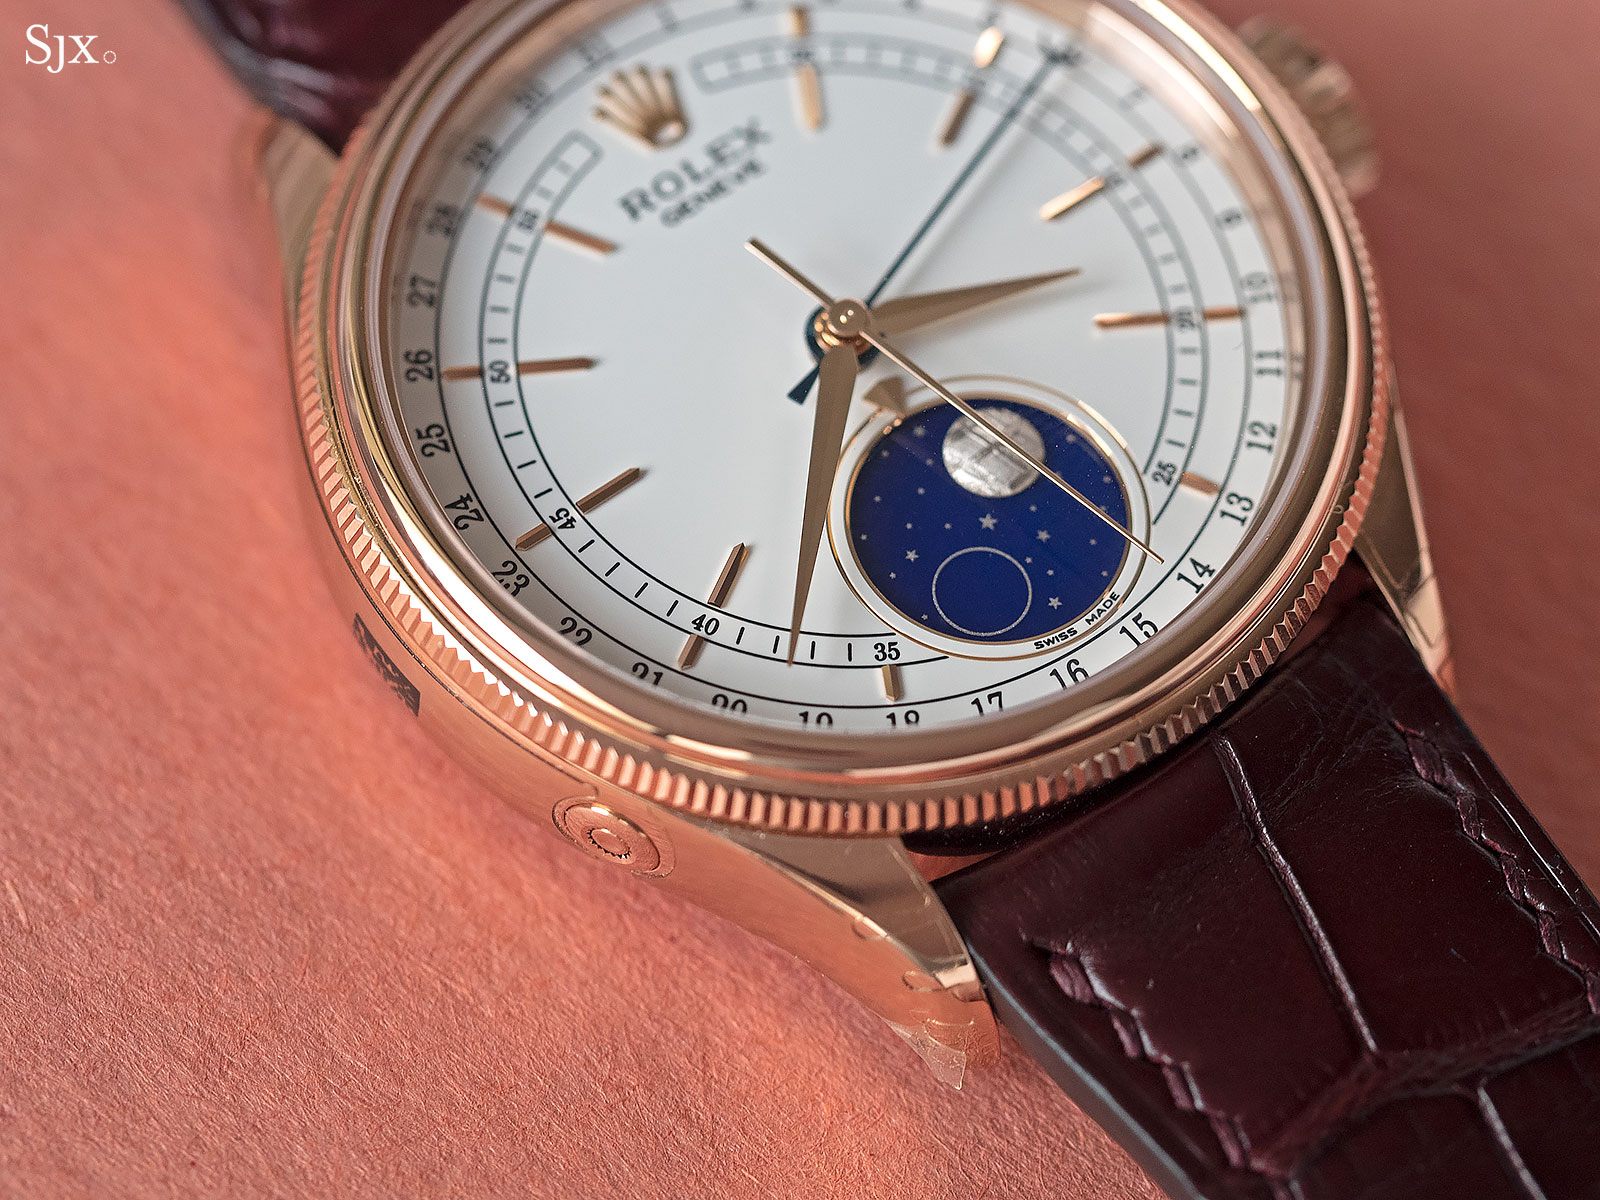 Rolex Cellini Moonphase 50535 review 9